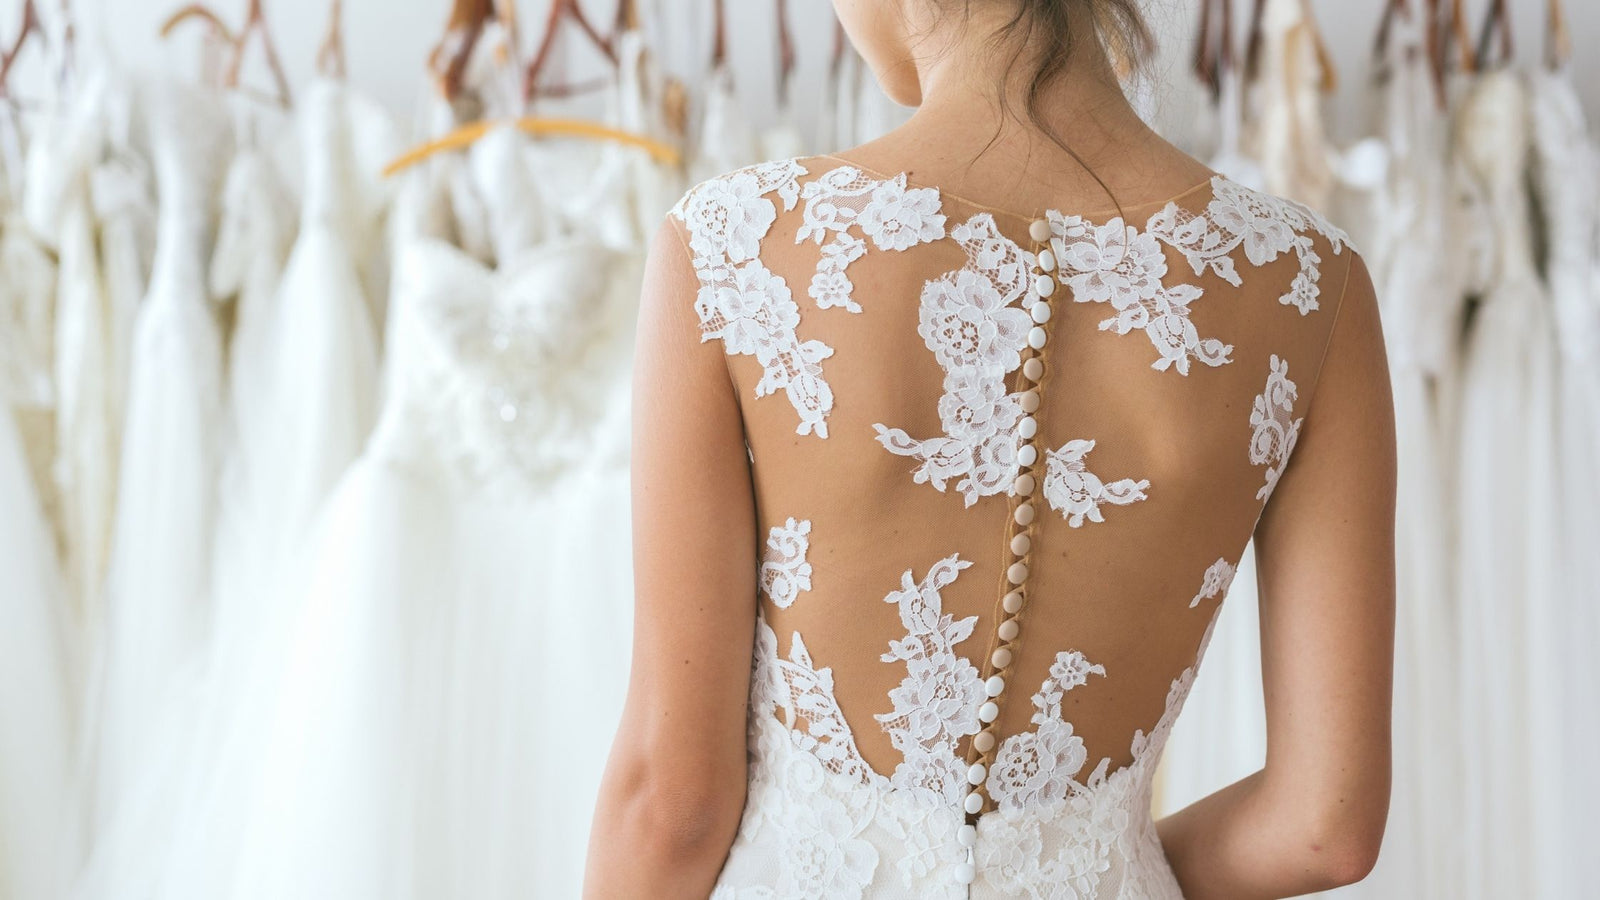 Stylist's Corner: How to use Boob Tape to style your wedding dress